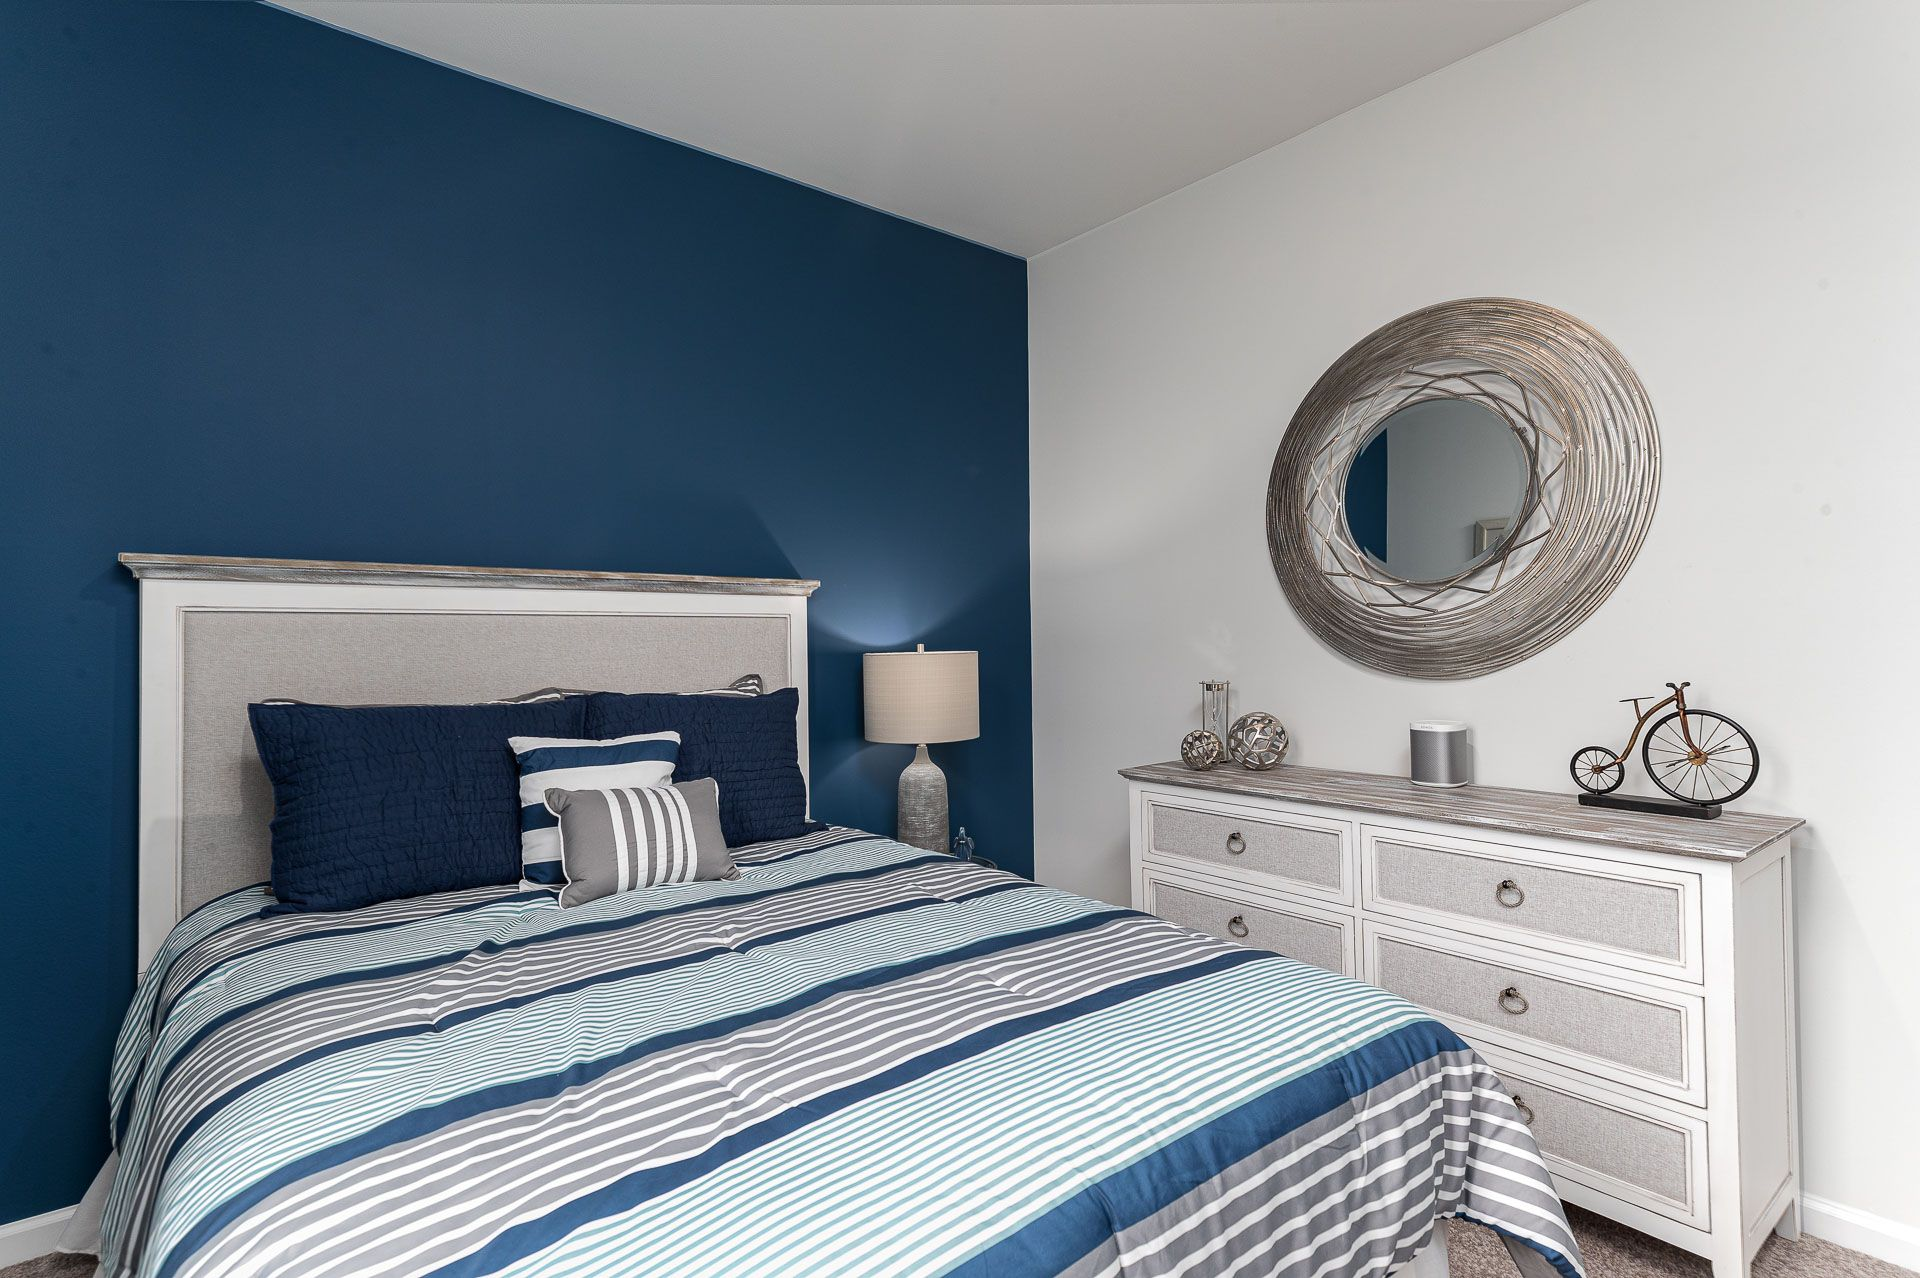 Bedroom featured in the KERRY By D.R. Horton in Myrtle Beach, SC